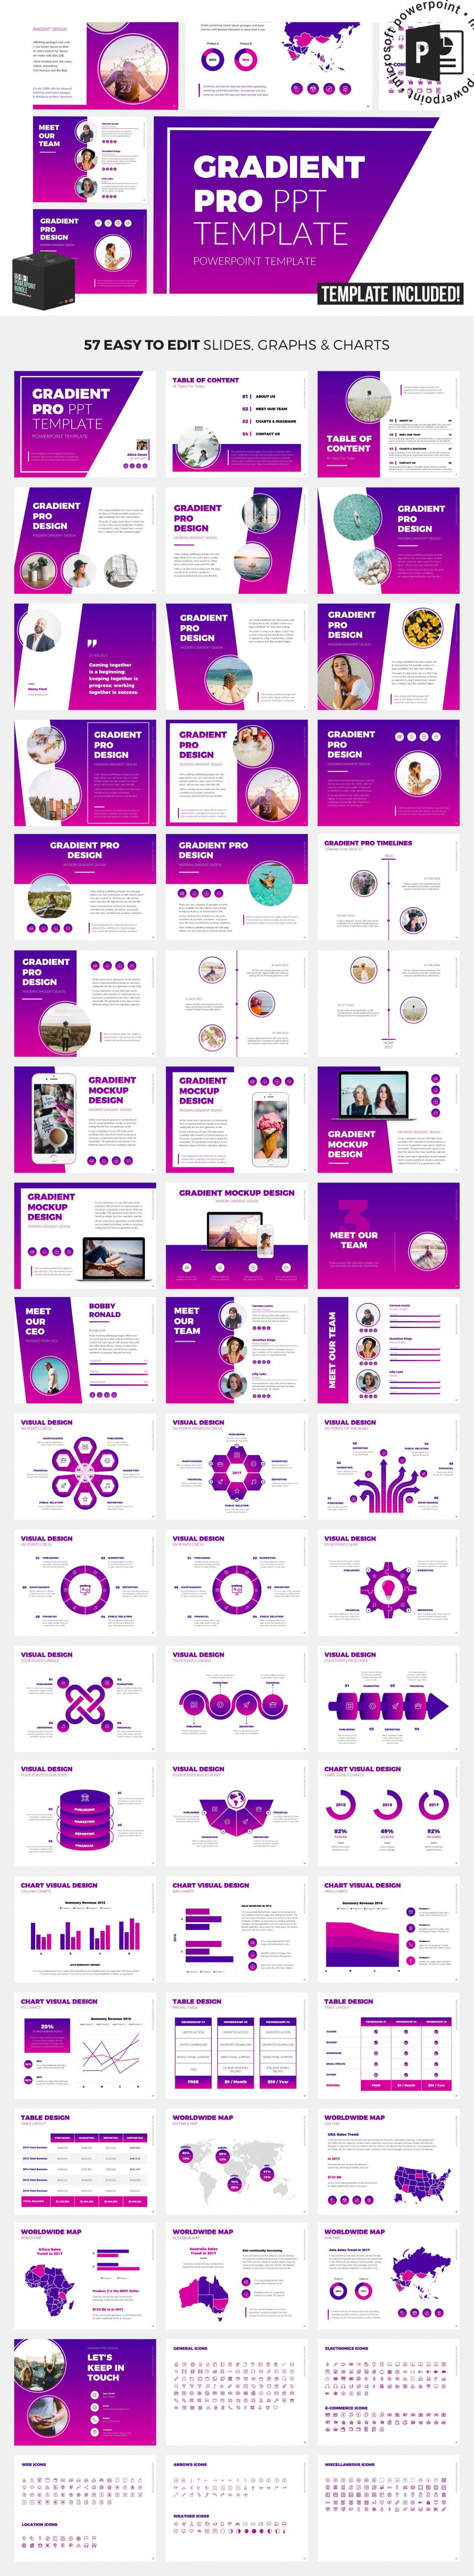 10 creative and professional powerpoint templates plus bonuses gradient pro powerpoint template toneelgroepblik Image collections